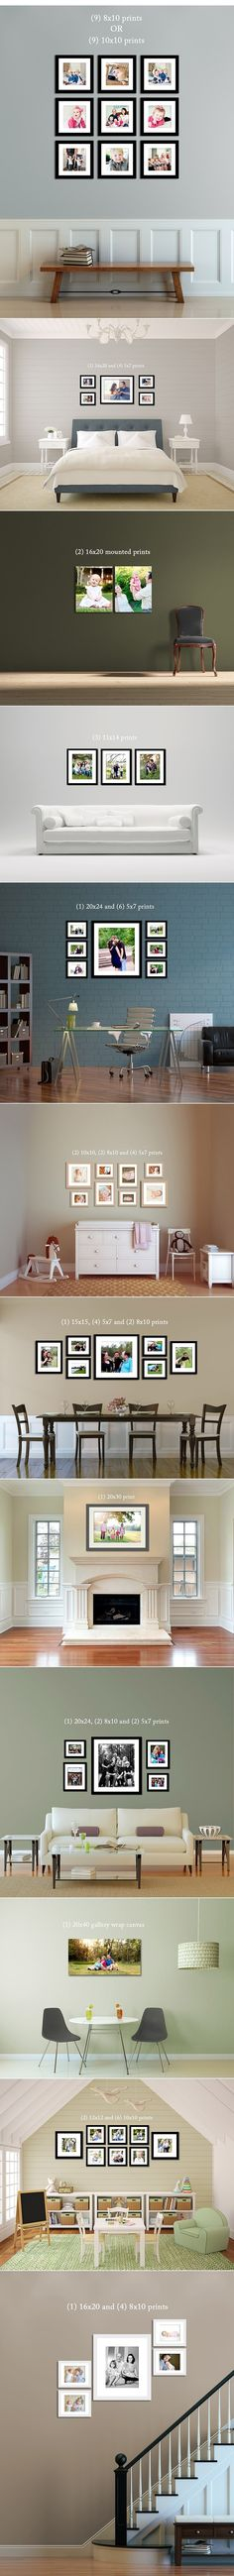 Picture hanging ideas. Clean and organized.